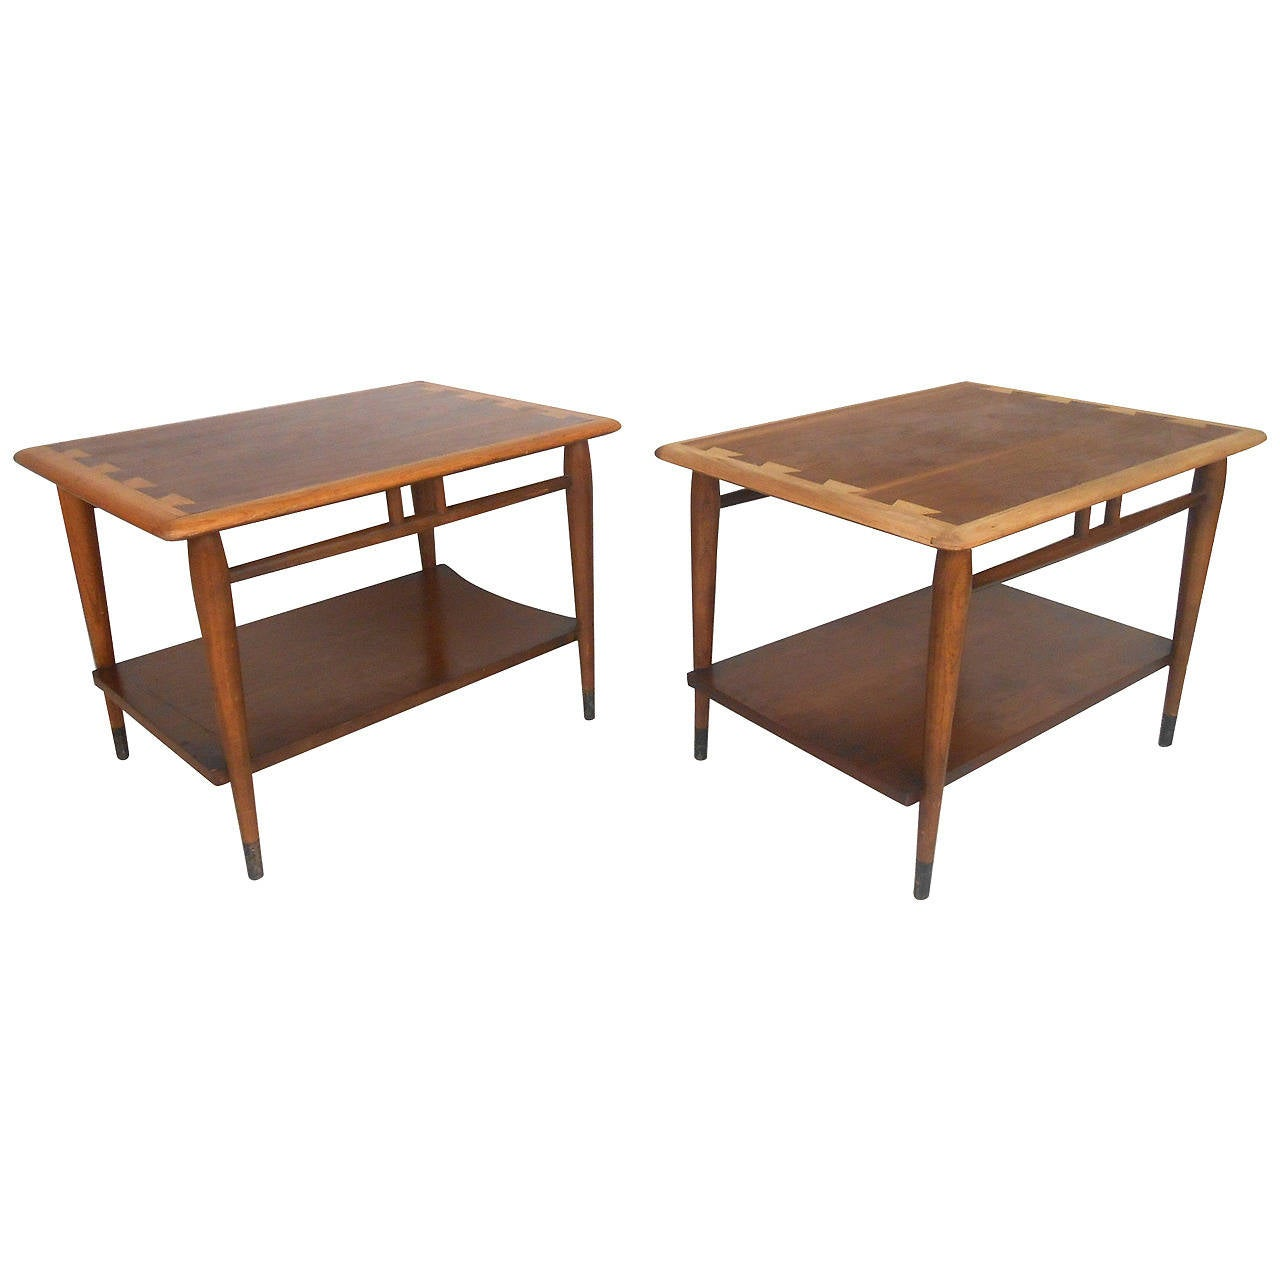 1950s Mid Century End Table By Lane Furniture: 1919732_l.jpeg